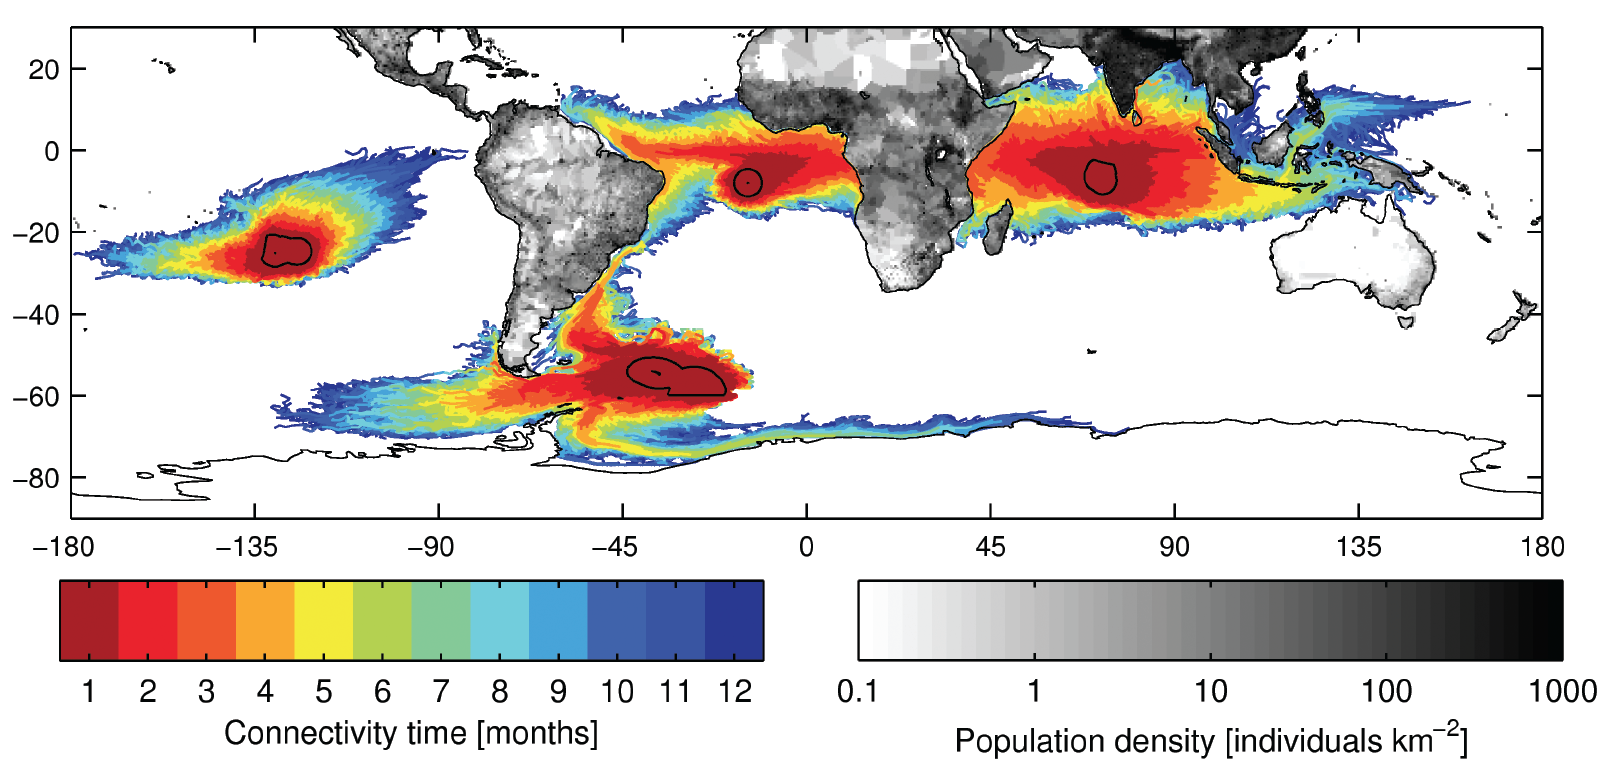 Current connections: how far away coastlines influence marine reserves